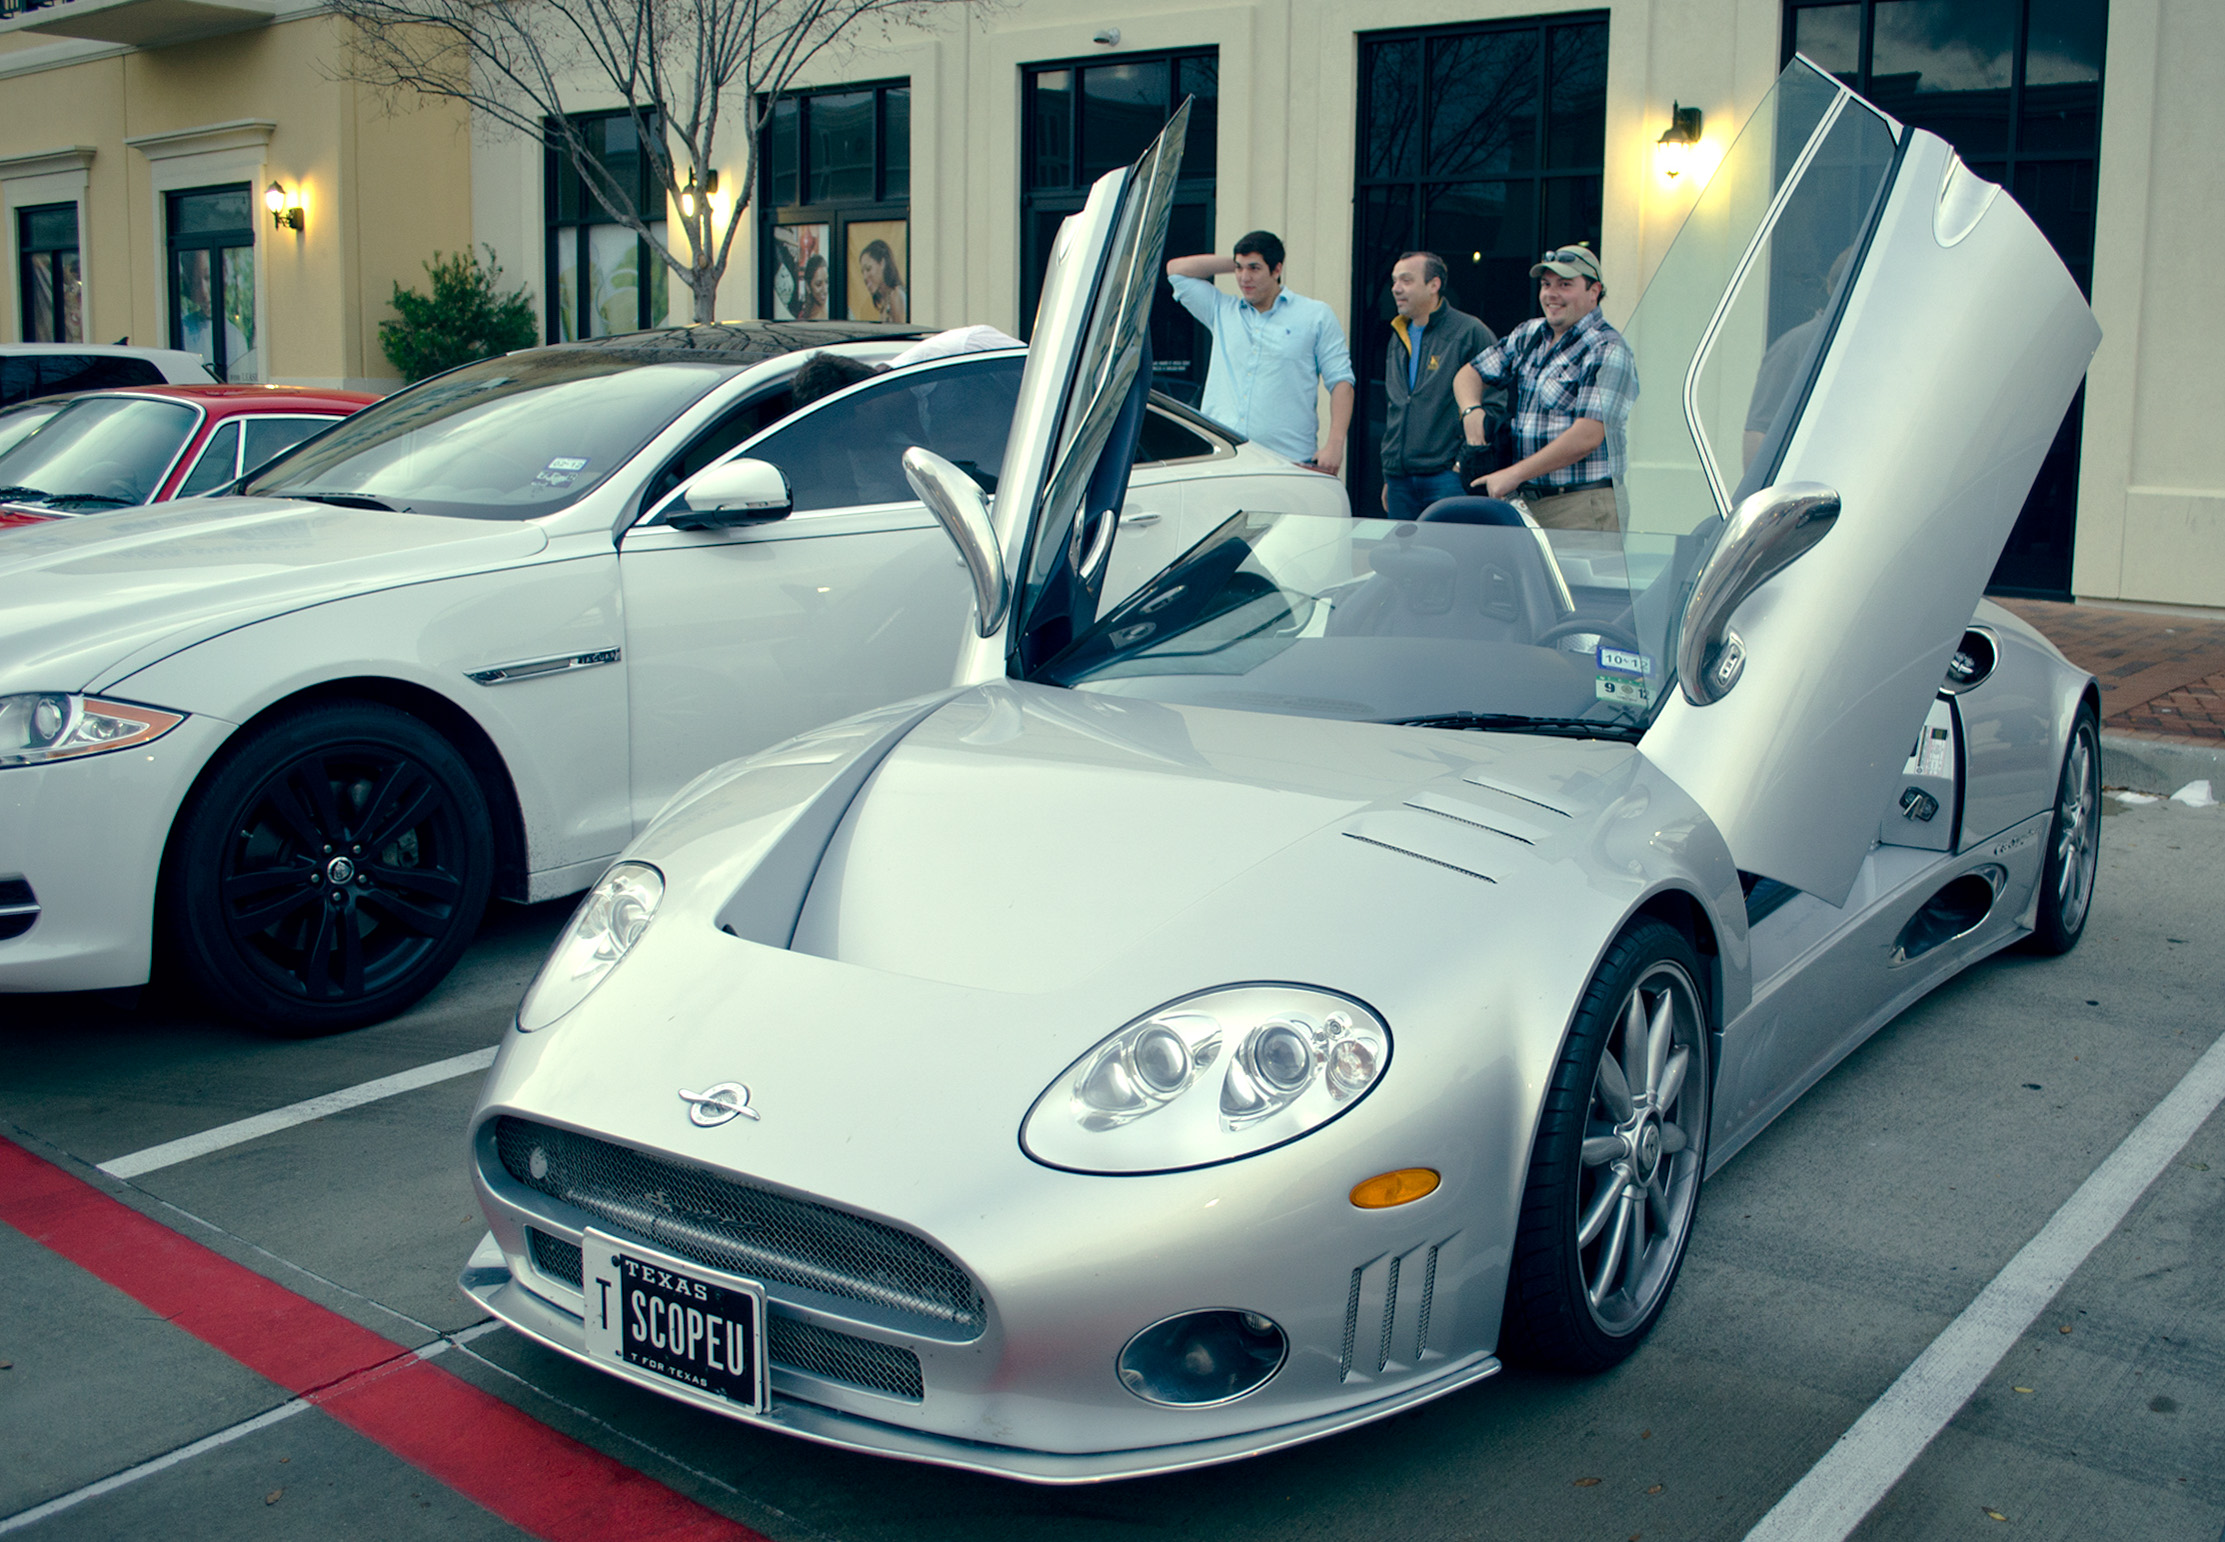 File:Spyker C8 Spyder 3 - Flickr - Price-Photography.jpg - Wikimedia ...